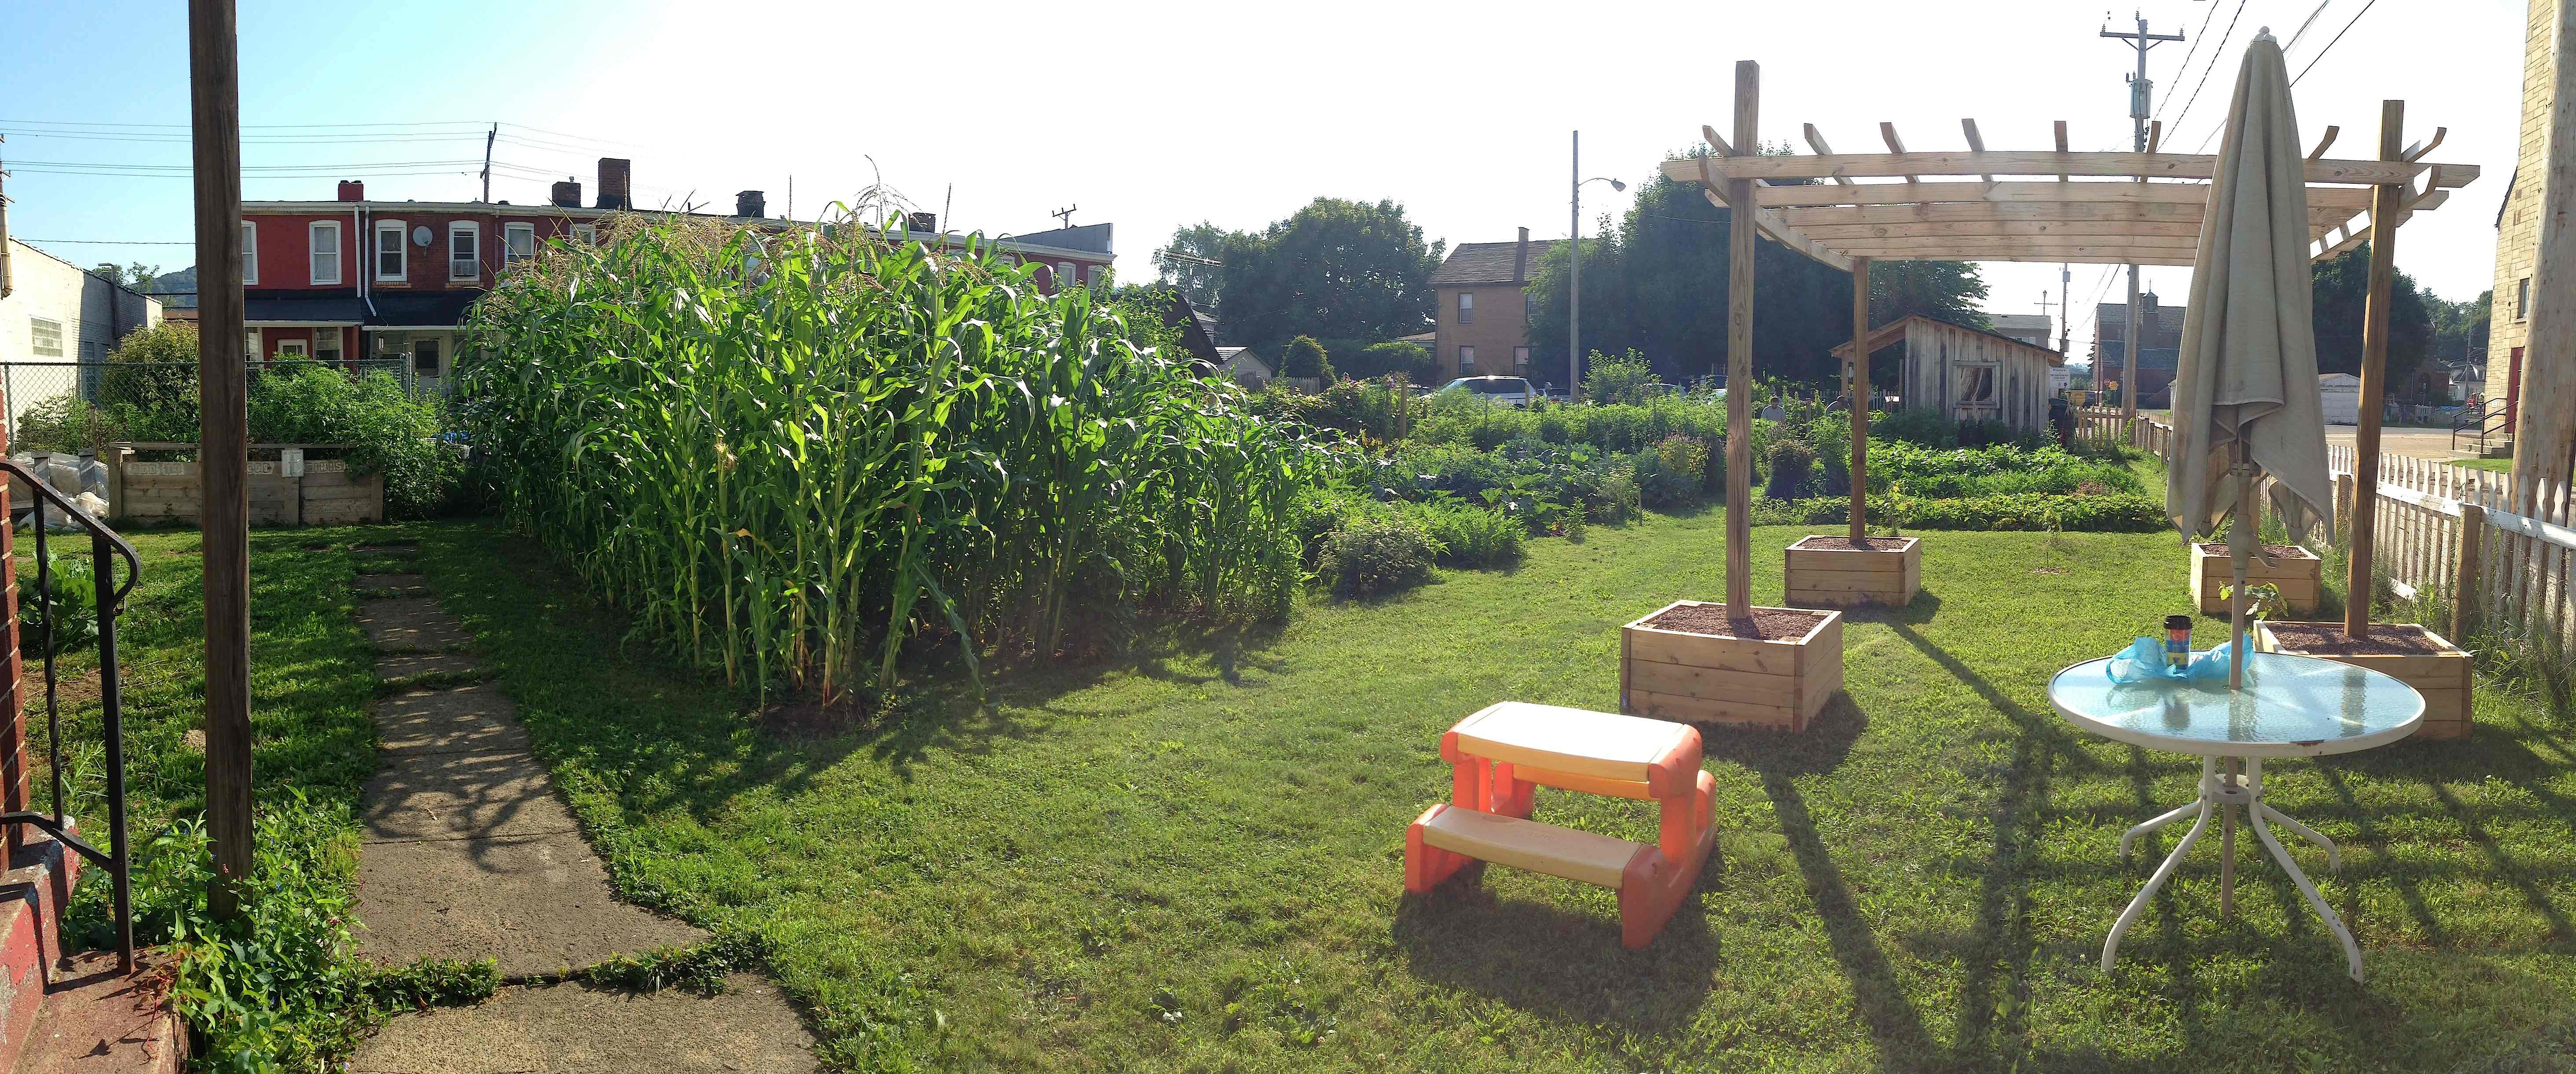 two ways to start a community garden in your neighborhood - How To Start A Community Garden